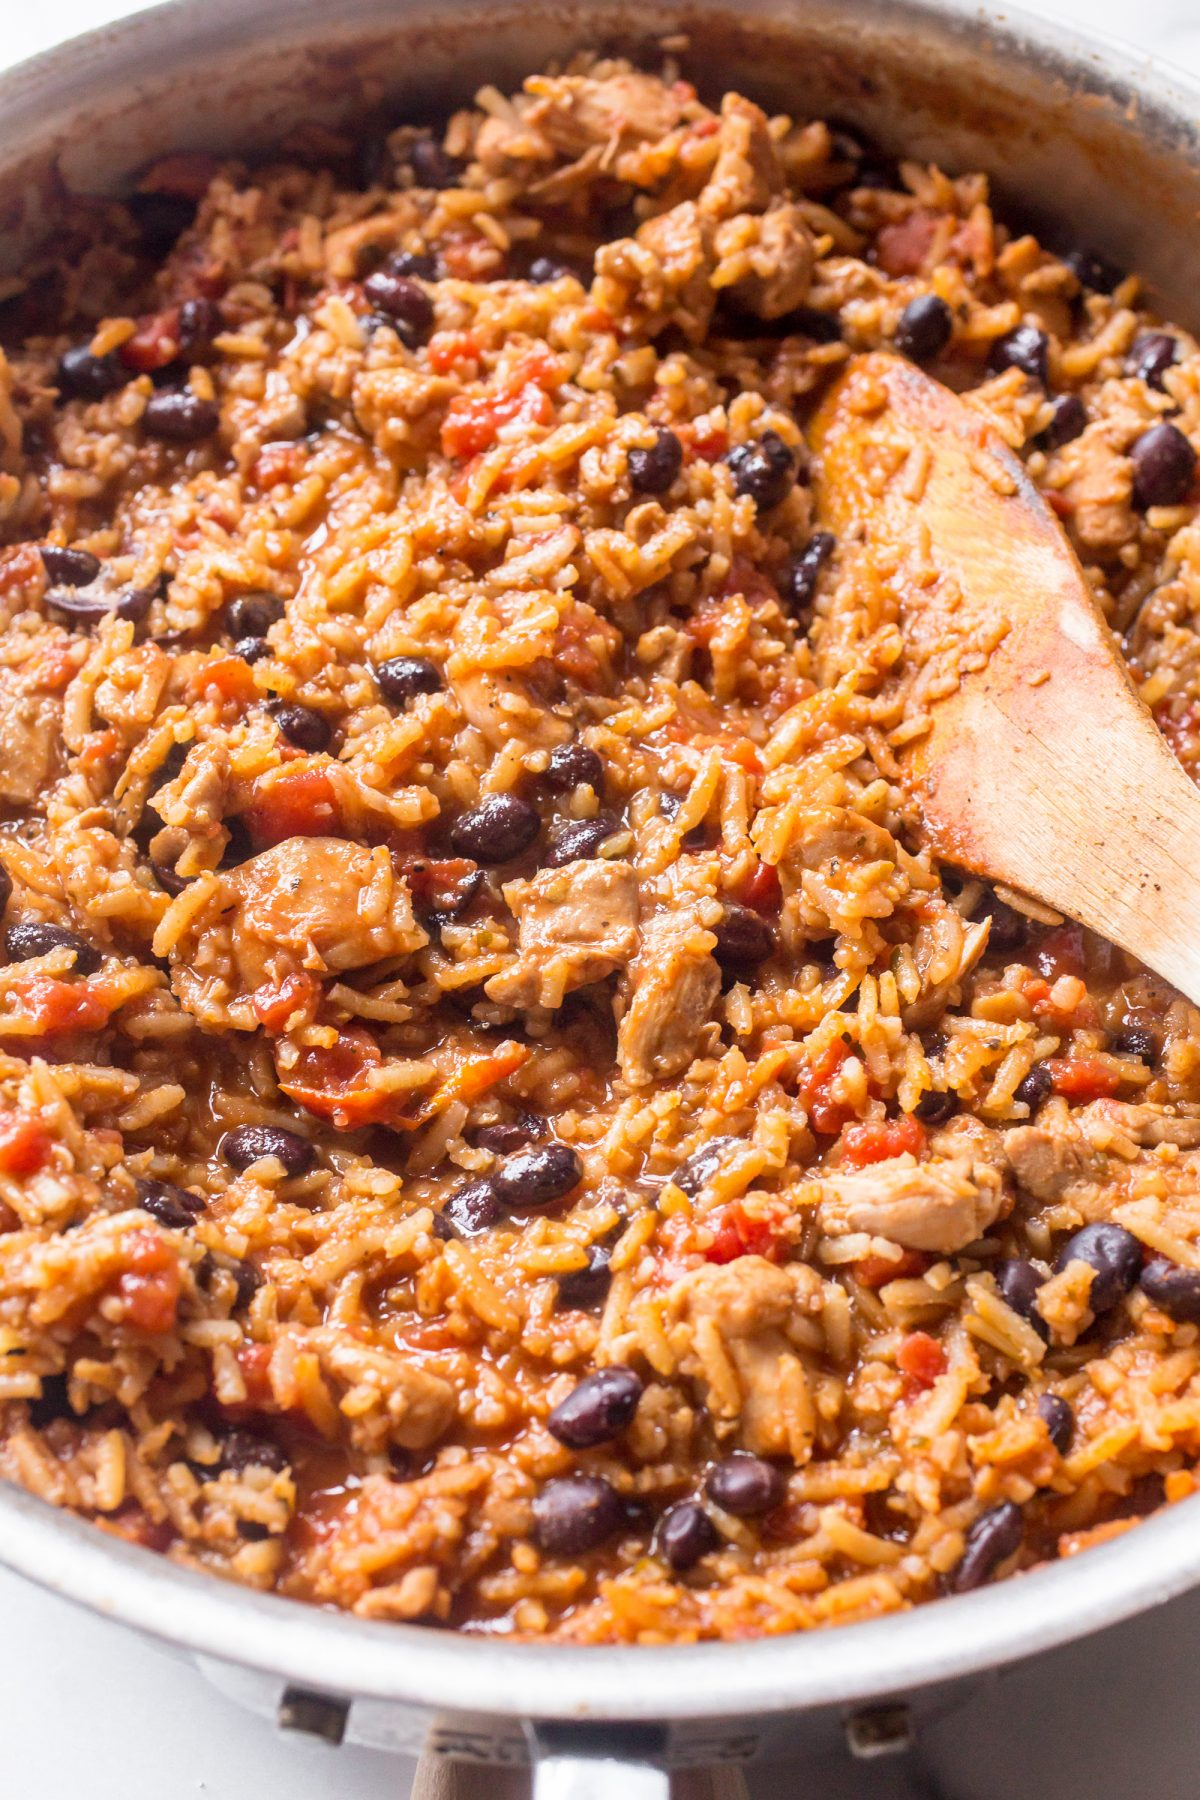 A pan of Mexican chicken, black beans, and rice with a wooden spoon